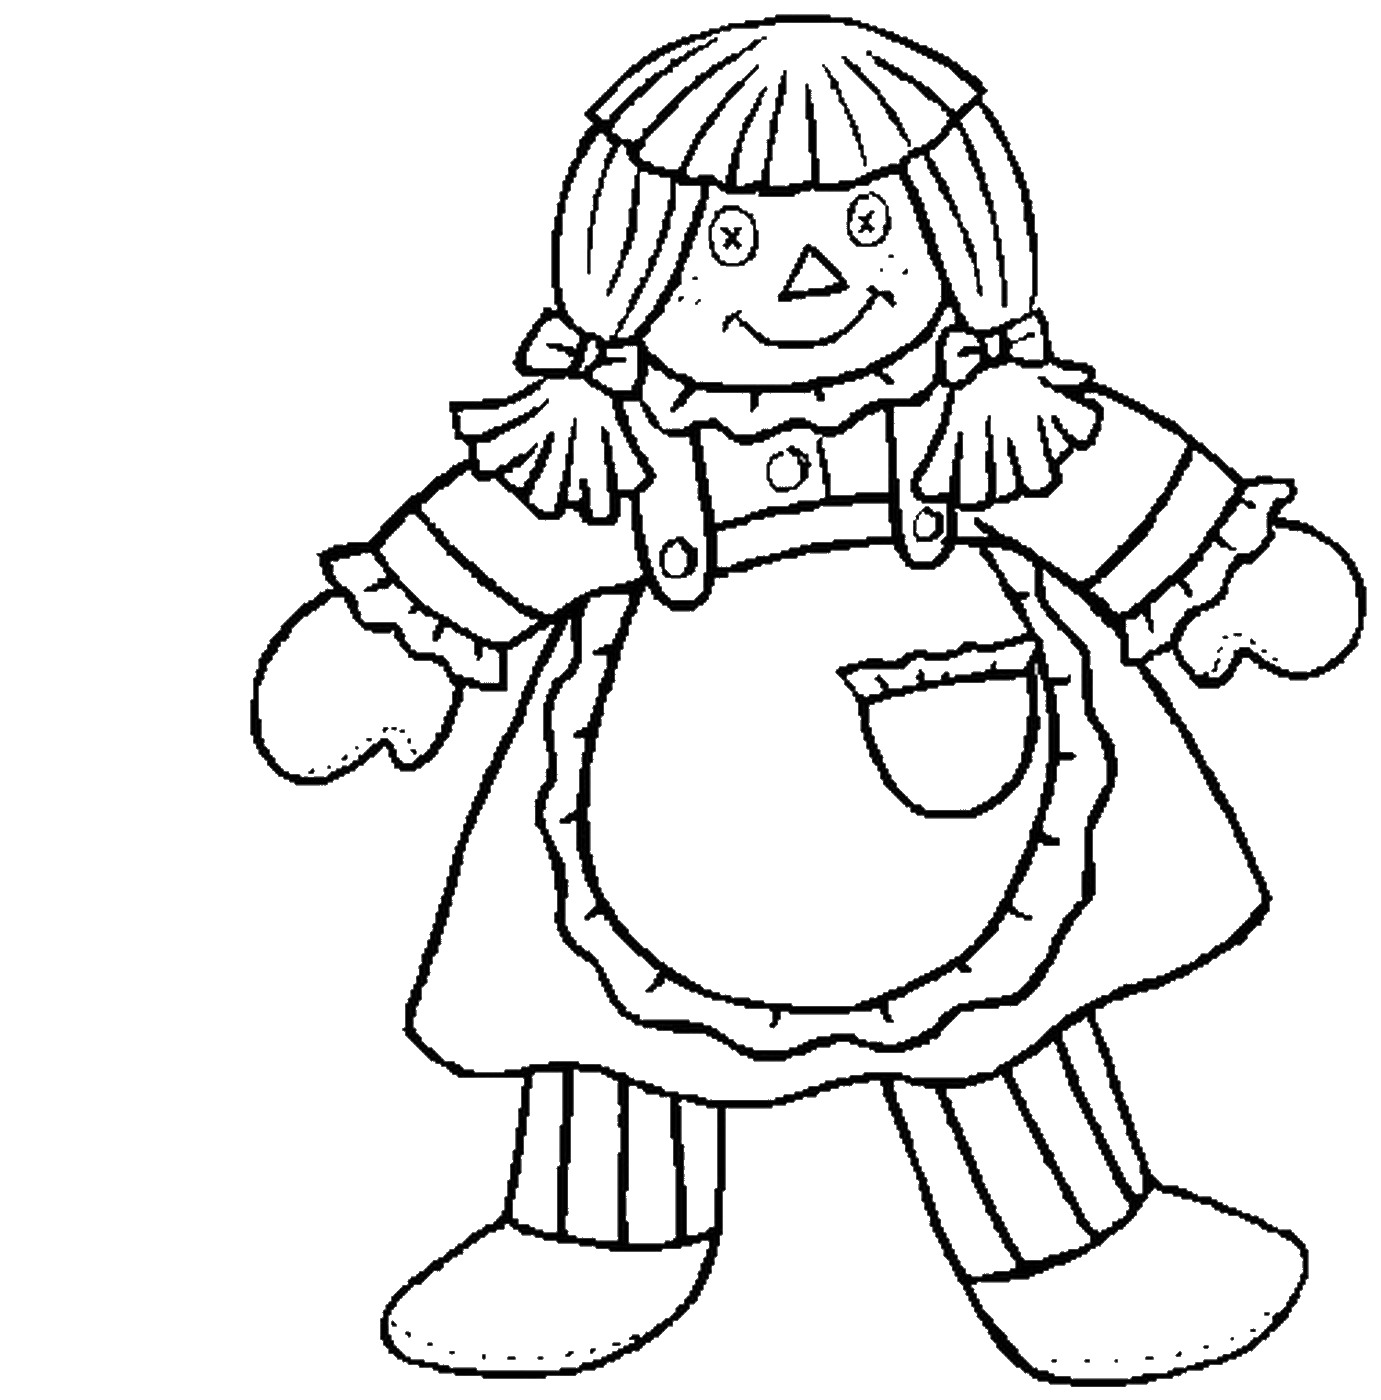 doll colouring pages american girl coloring pages best coloring pages for kids colouring pages doll